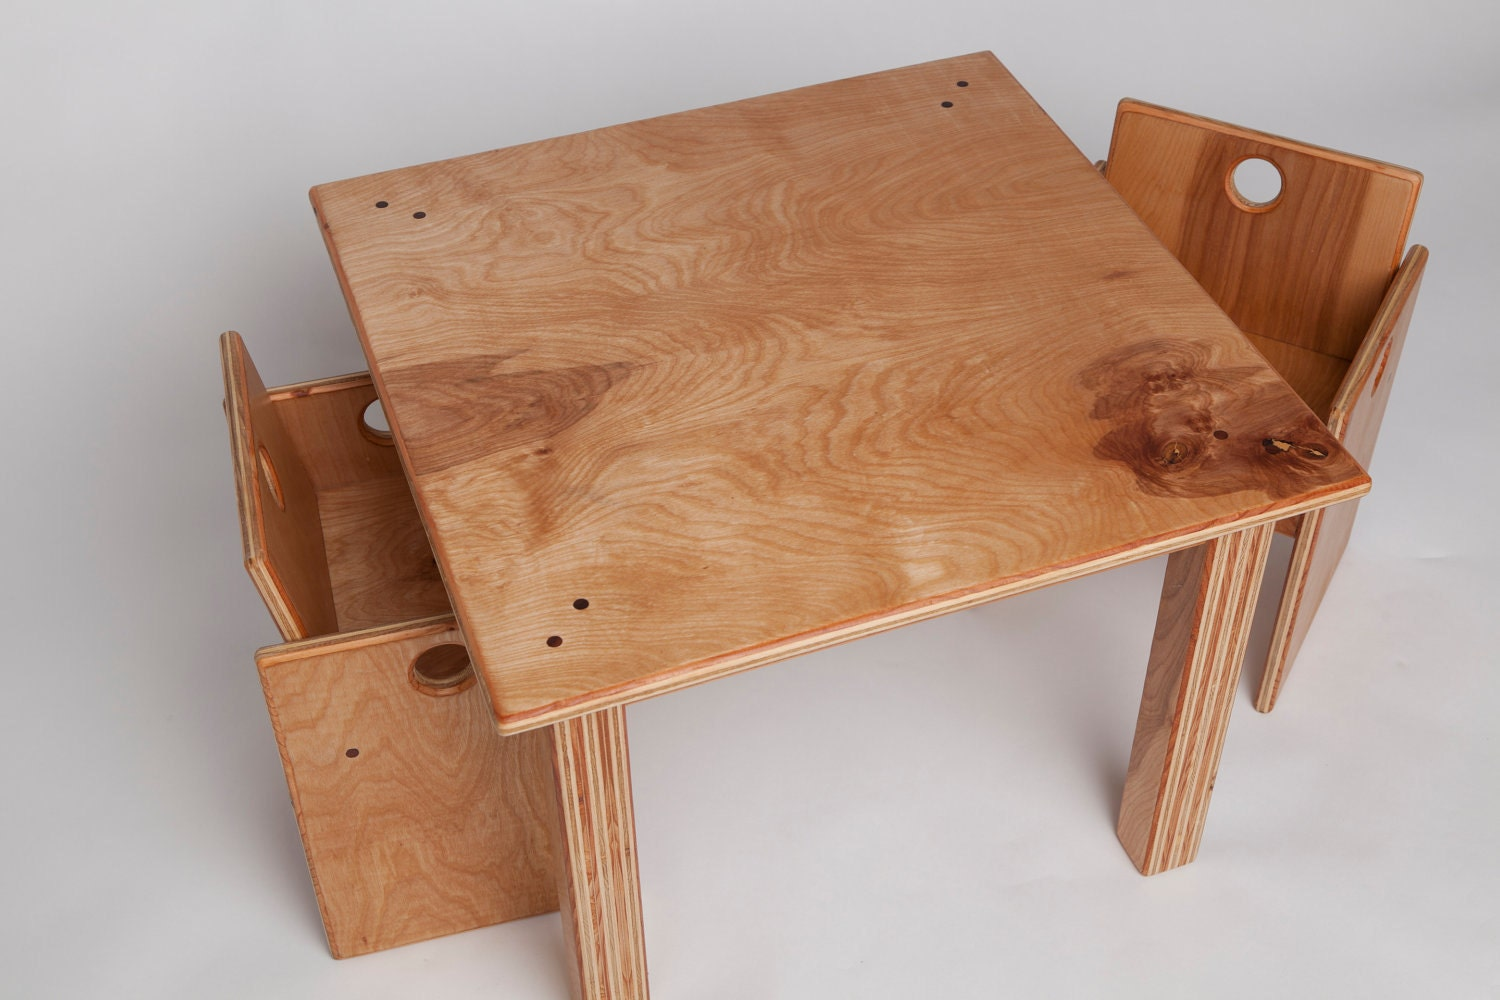 zoom. Toddler Size Wooden Table and Chairs